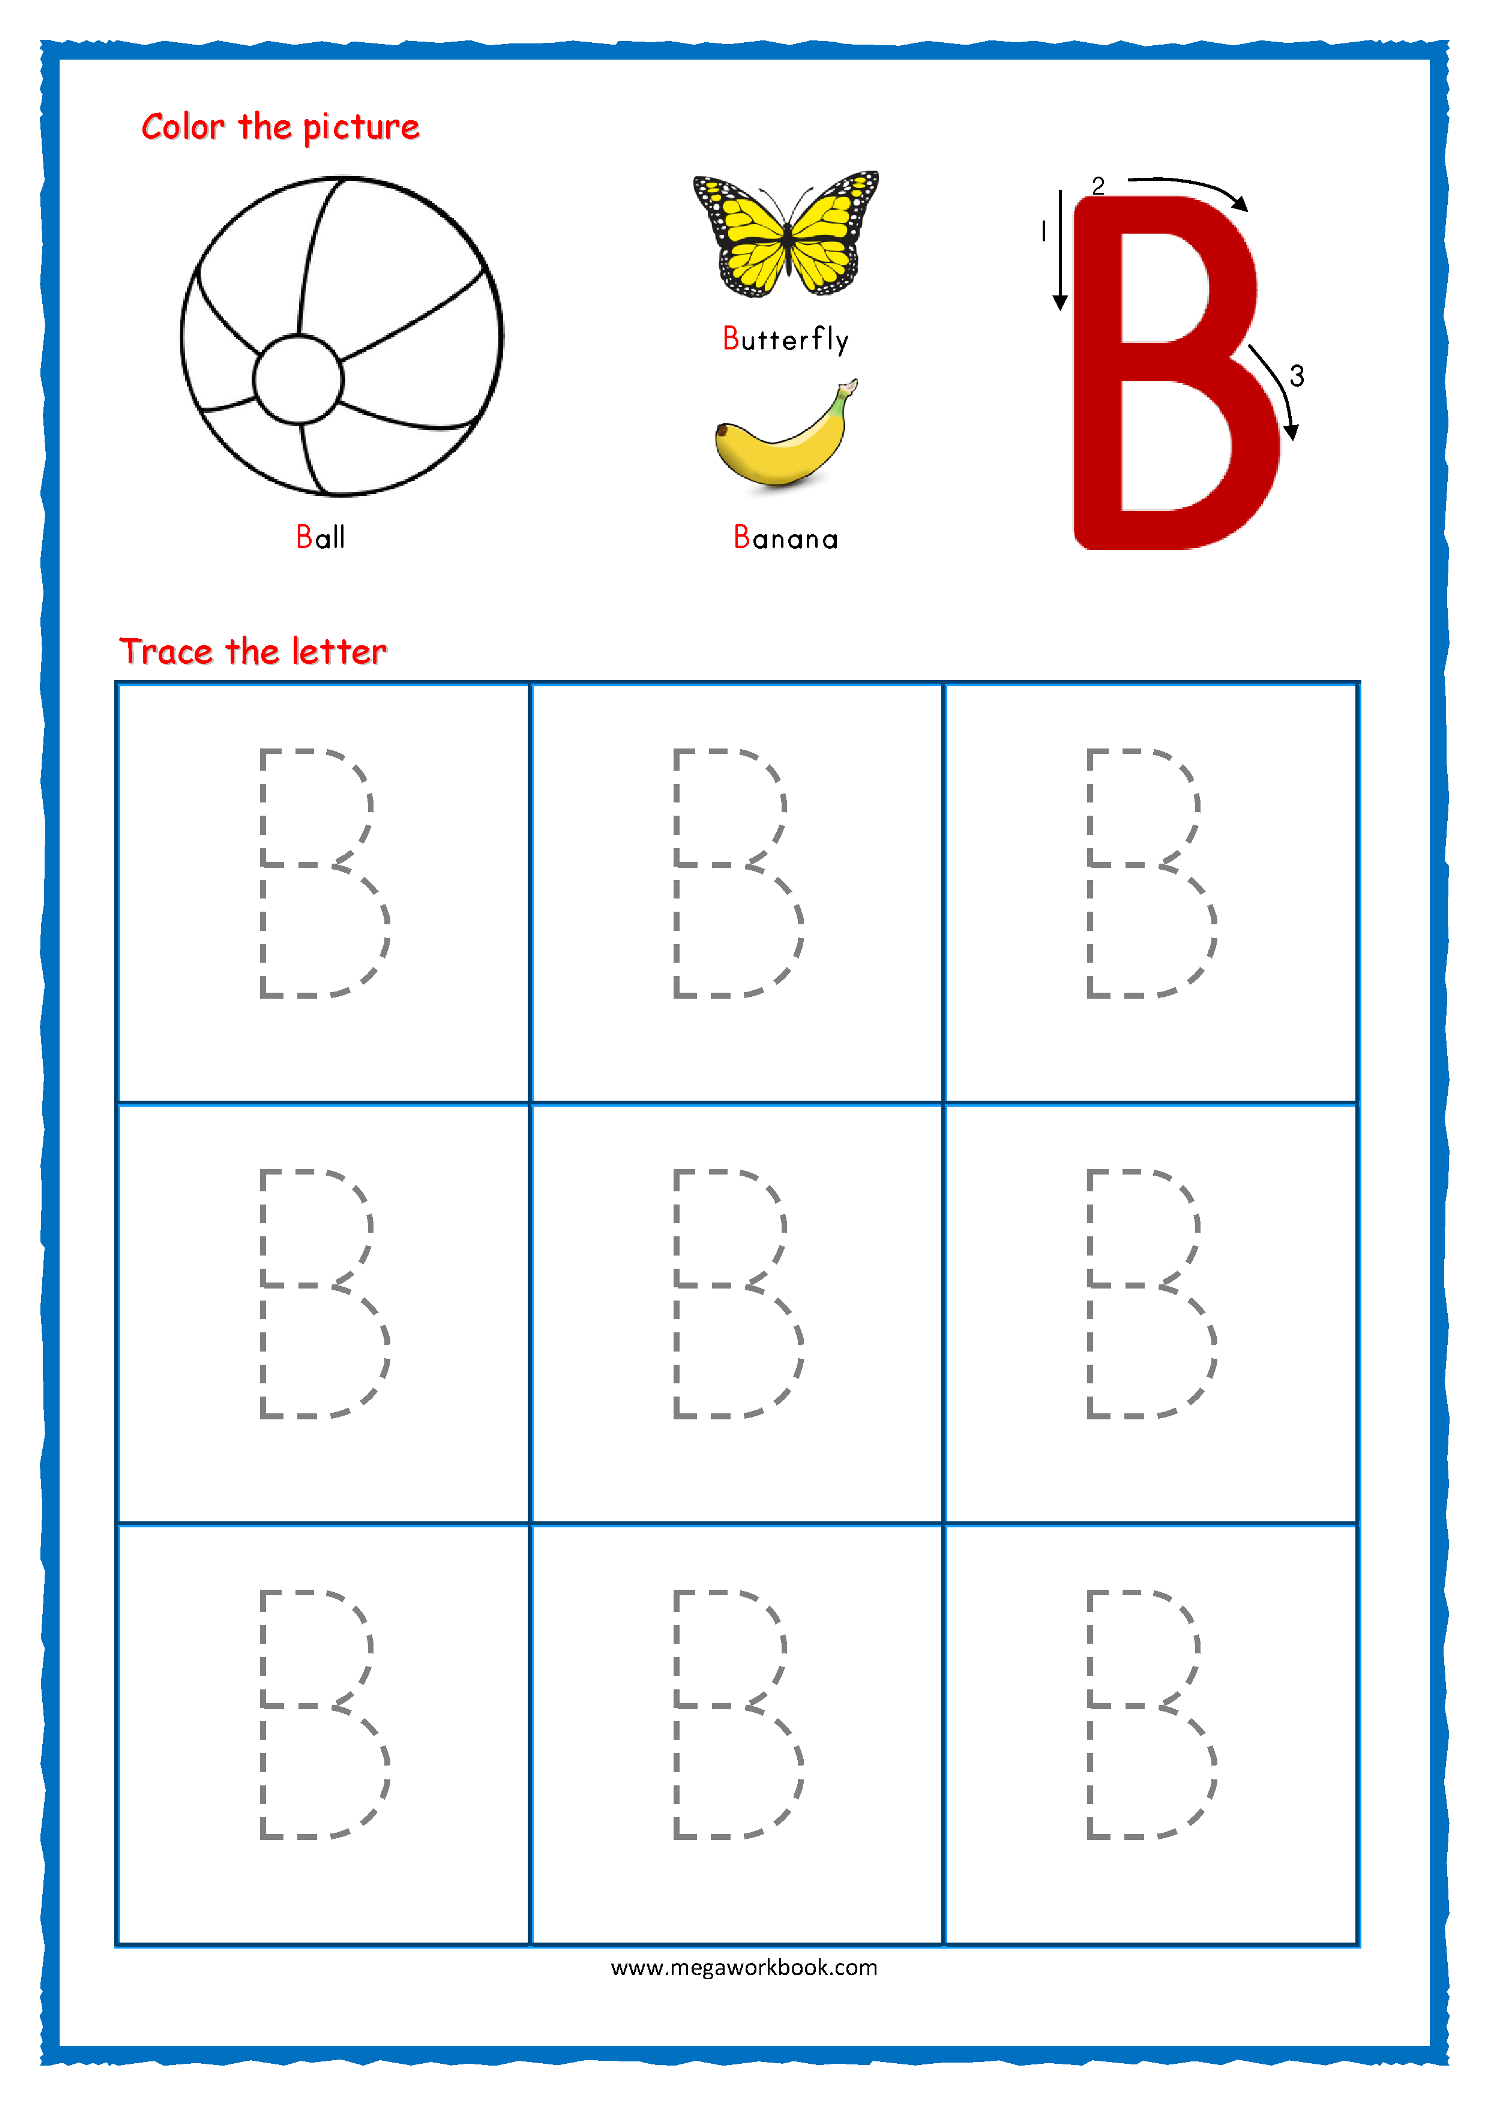 Tracing Letters - Alphabet Tracing - Capital Letters throughout Letter B Tracing Sheet